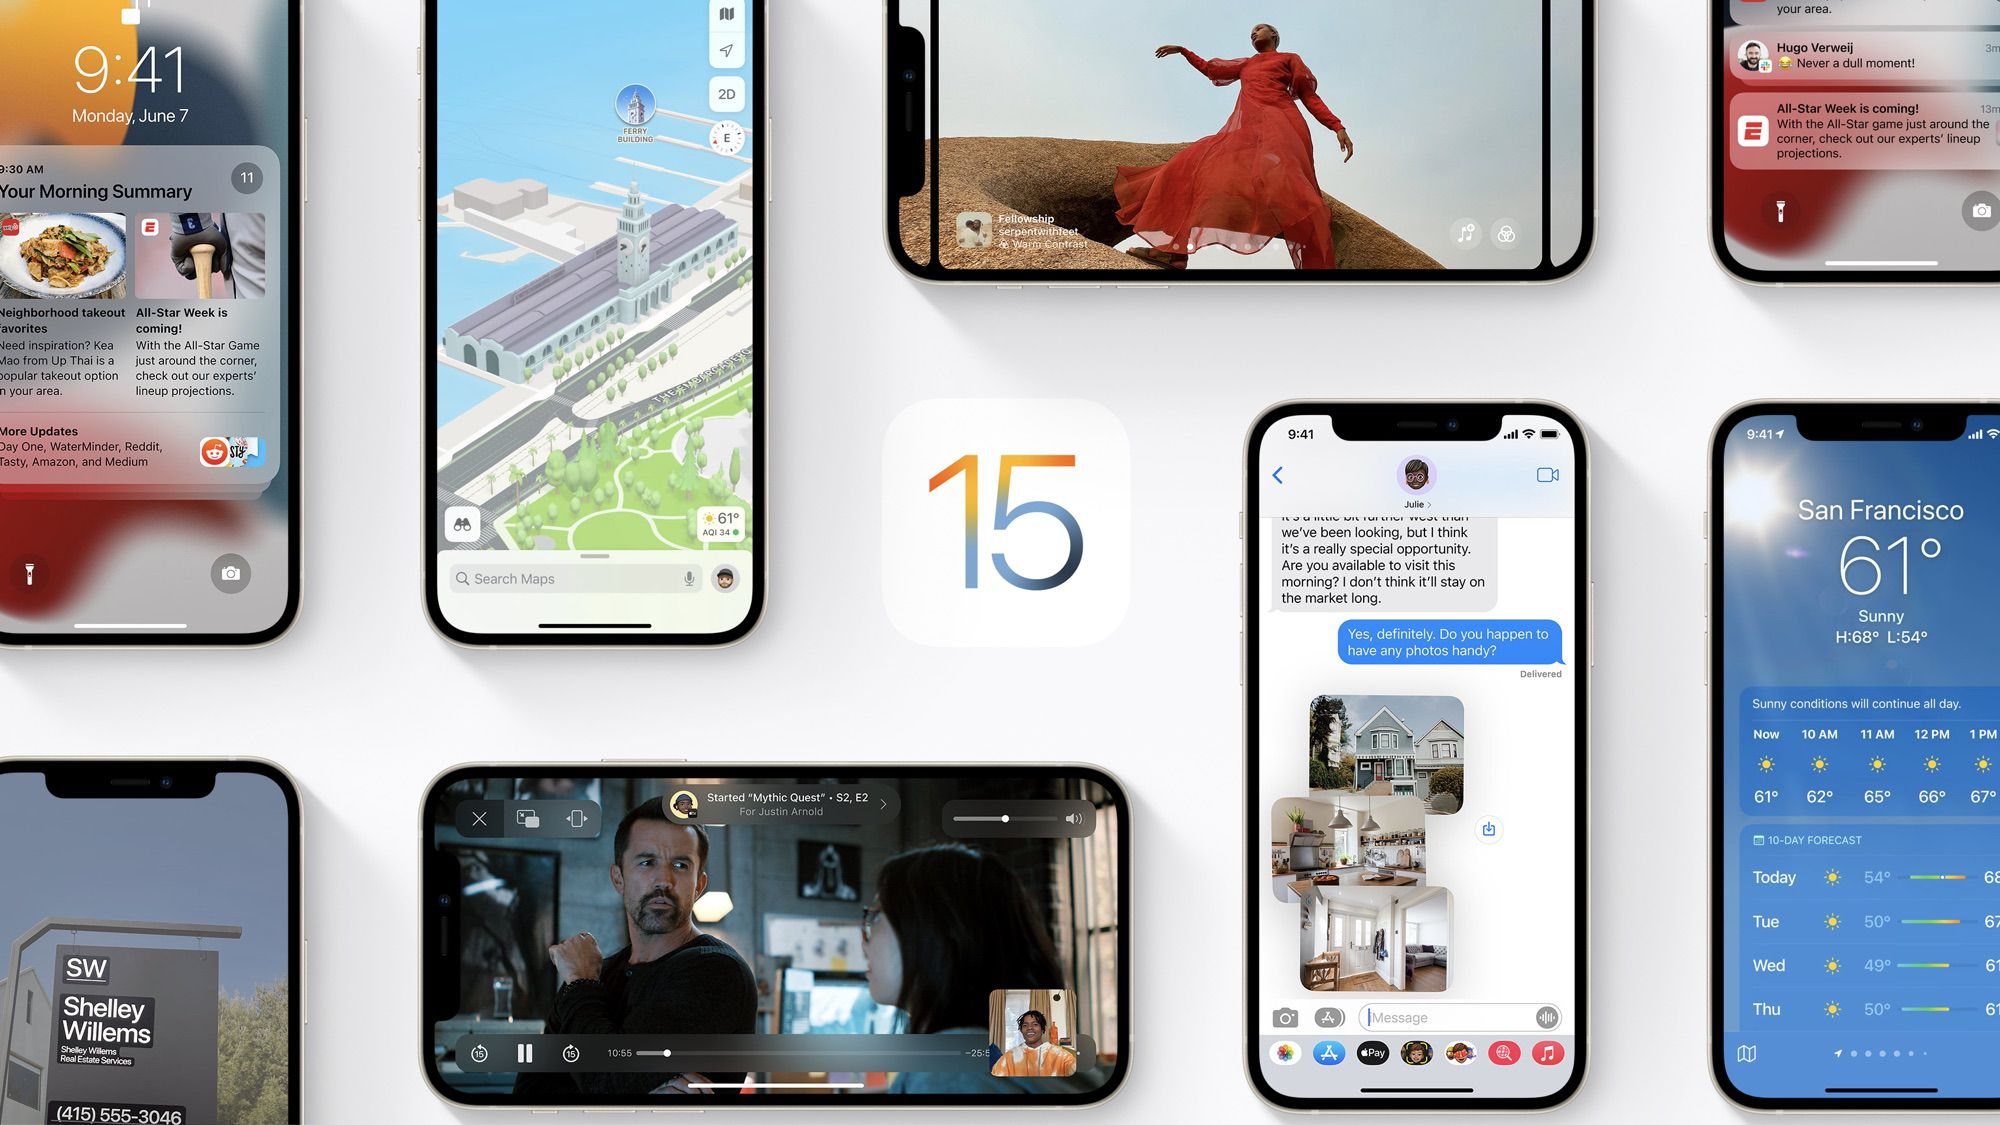 iOS 15 Compatible With All iPhones That Run iOS 14 - MacRumors